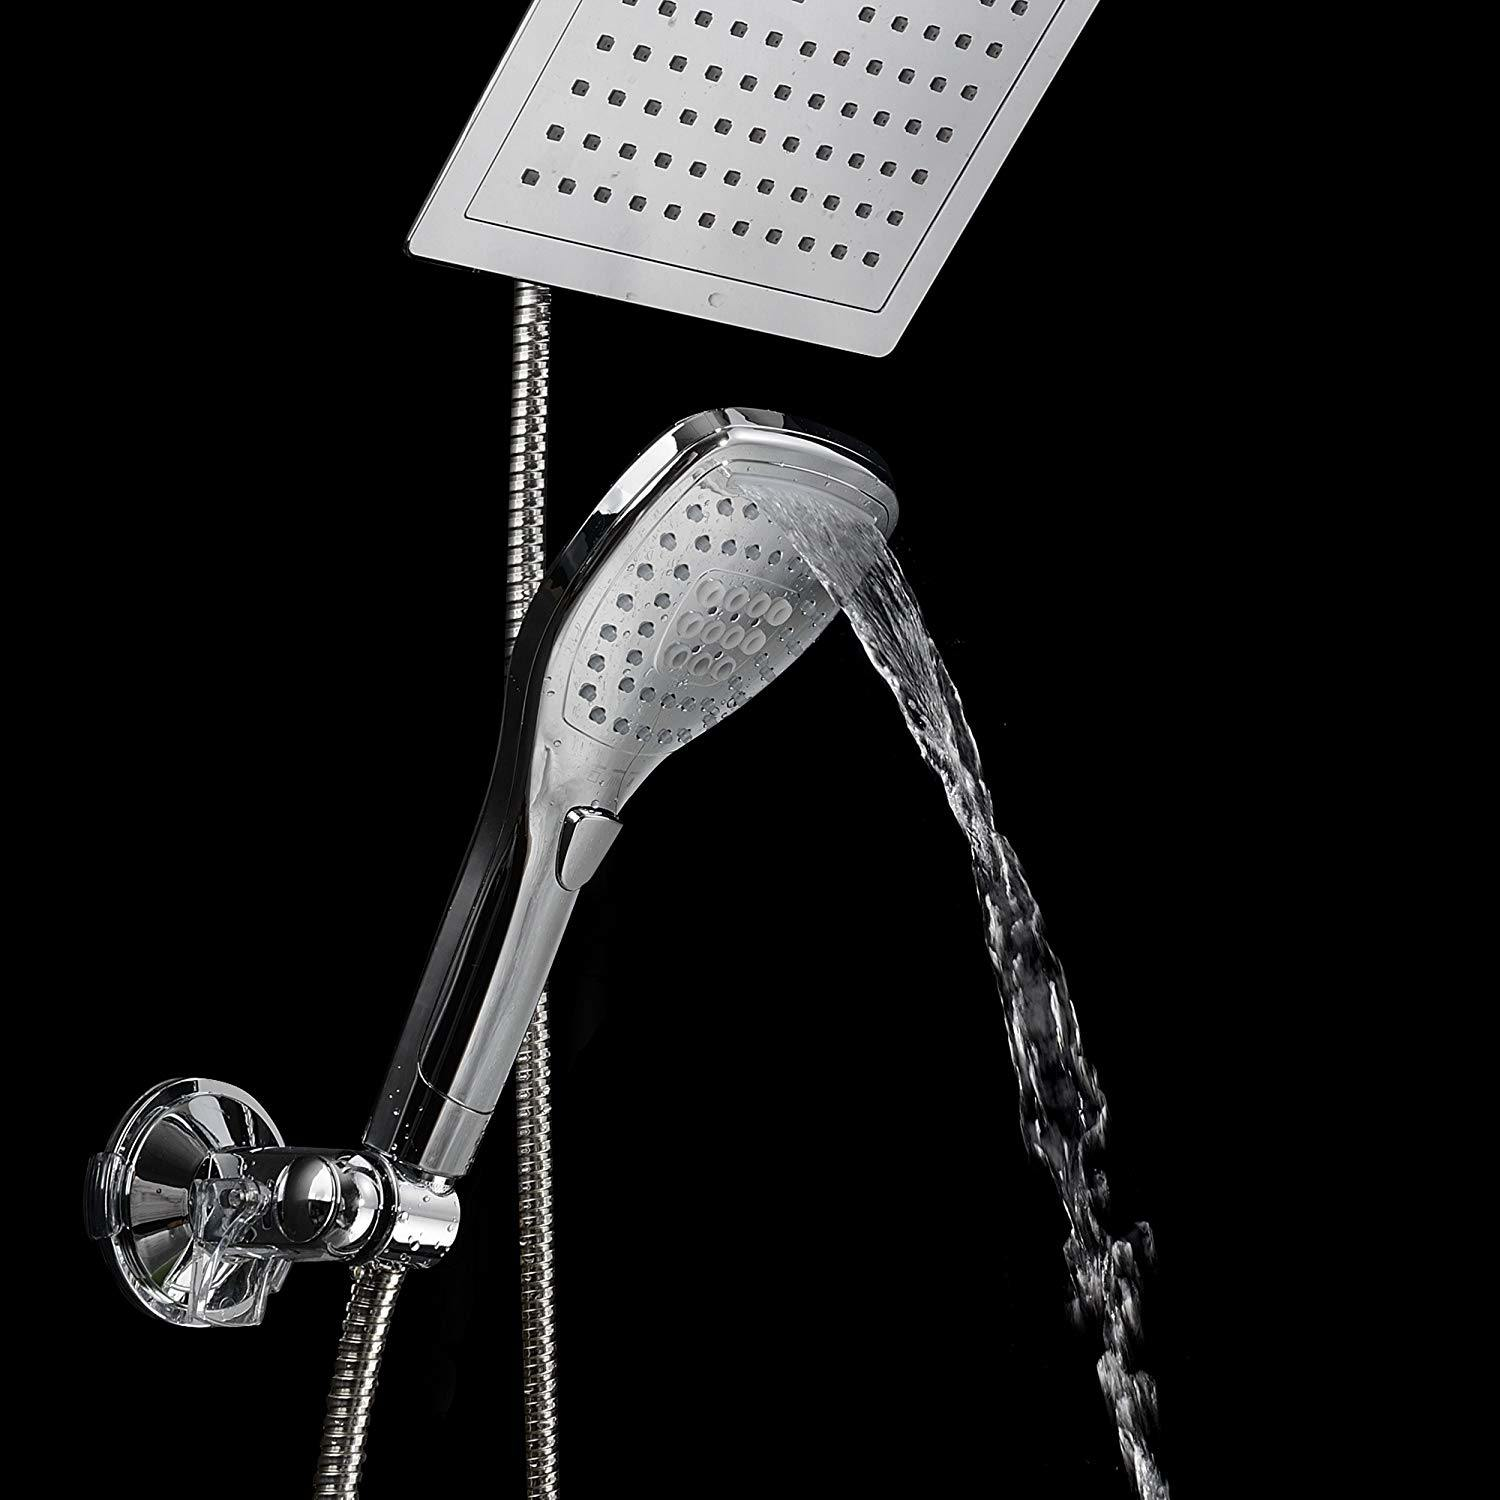 Hot Item 12 Quad Function Rainfall Jet Shower Head Wand Combo In Chrome